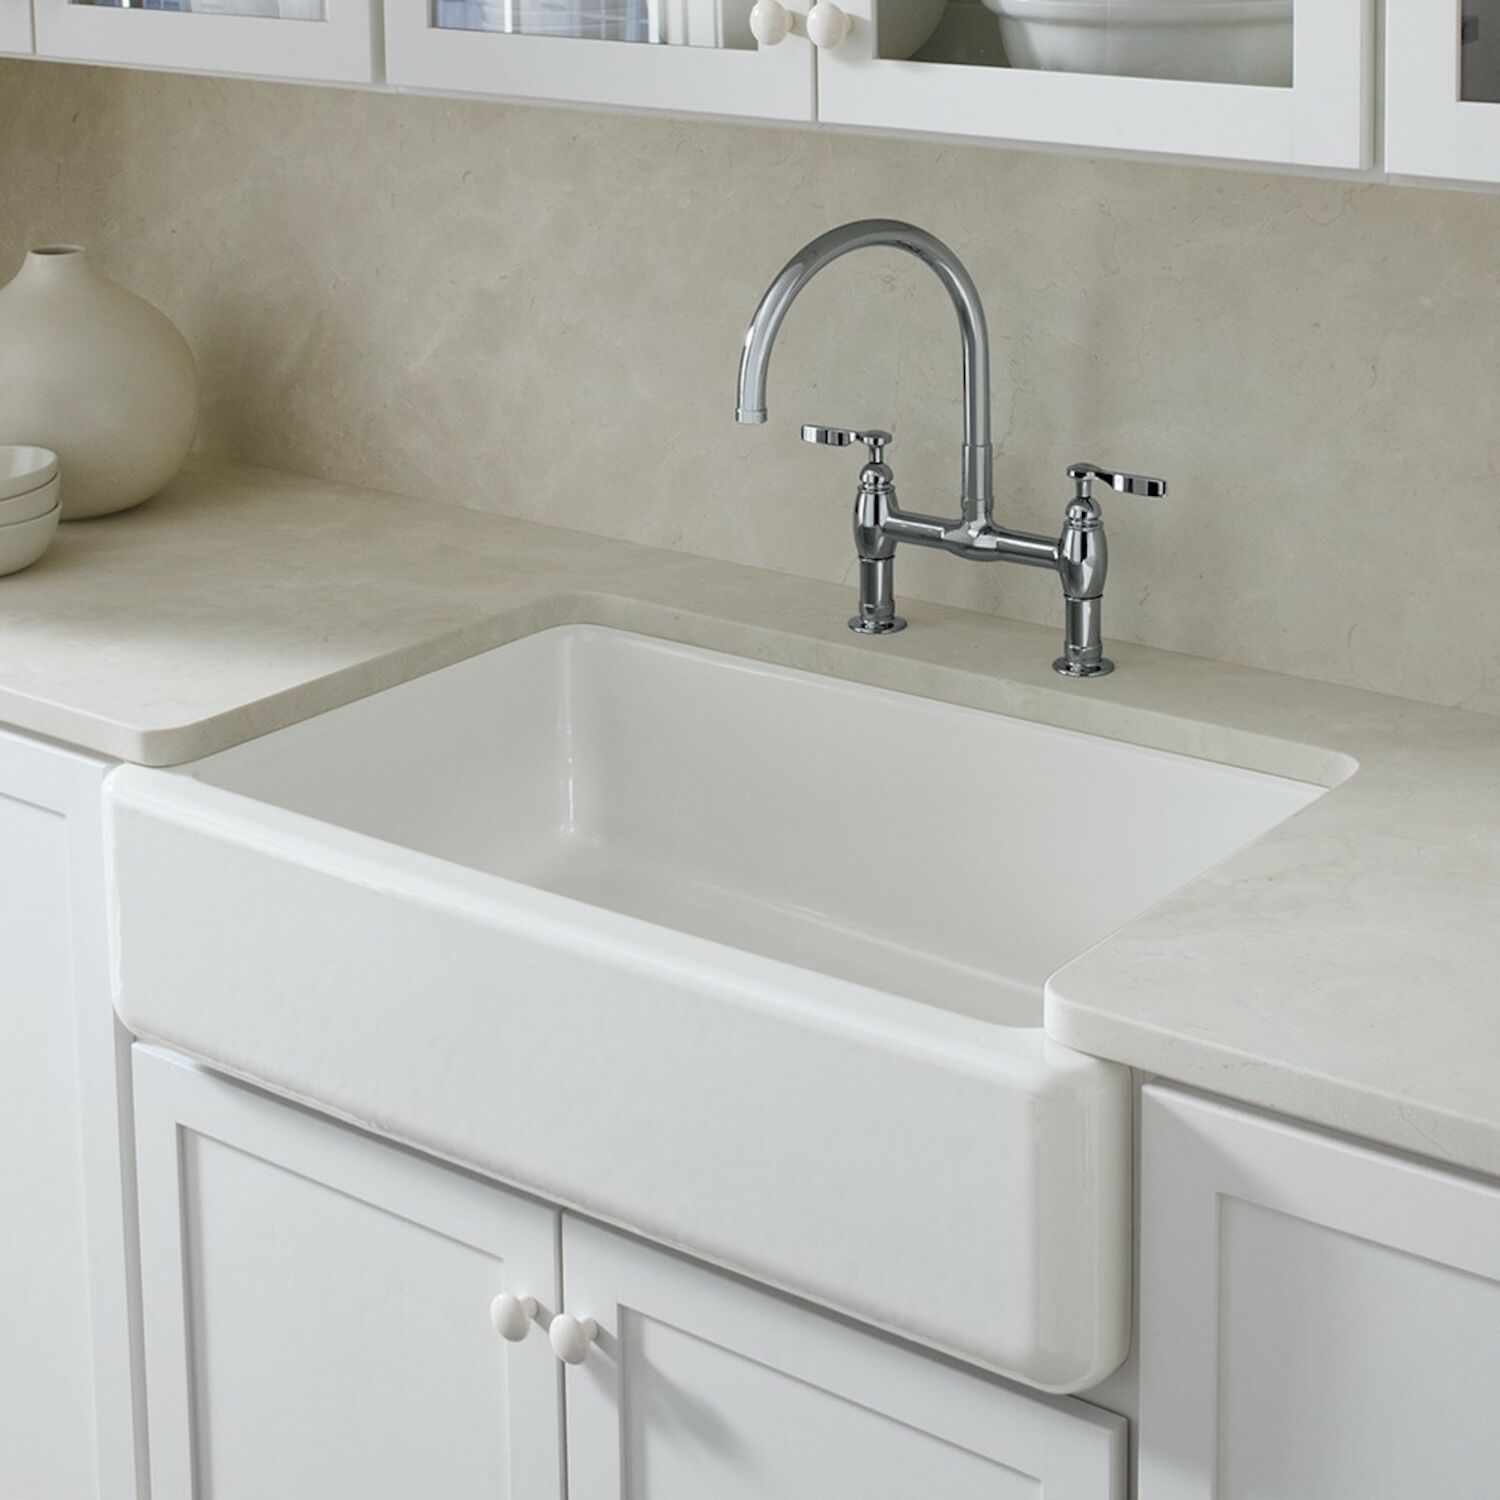 Kohler Whitehaven Self Trimming 35 11 16 X 21 9 16 X 9 5 8 Inches Under Mount Single Bowl Kitchen Sink With Tall Apron K 6489 0 Robinson